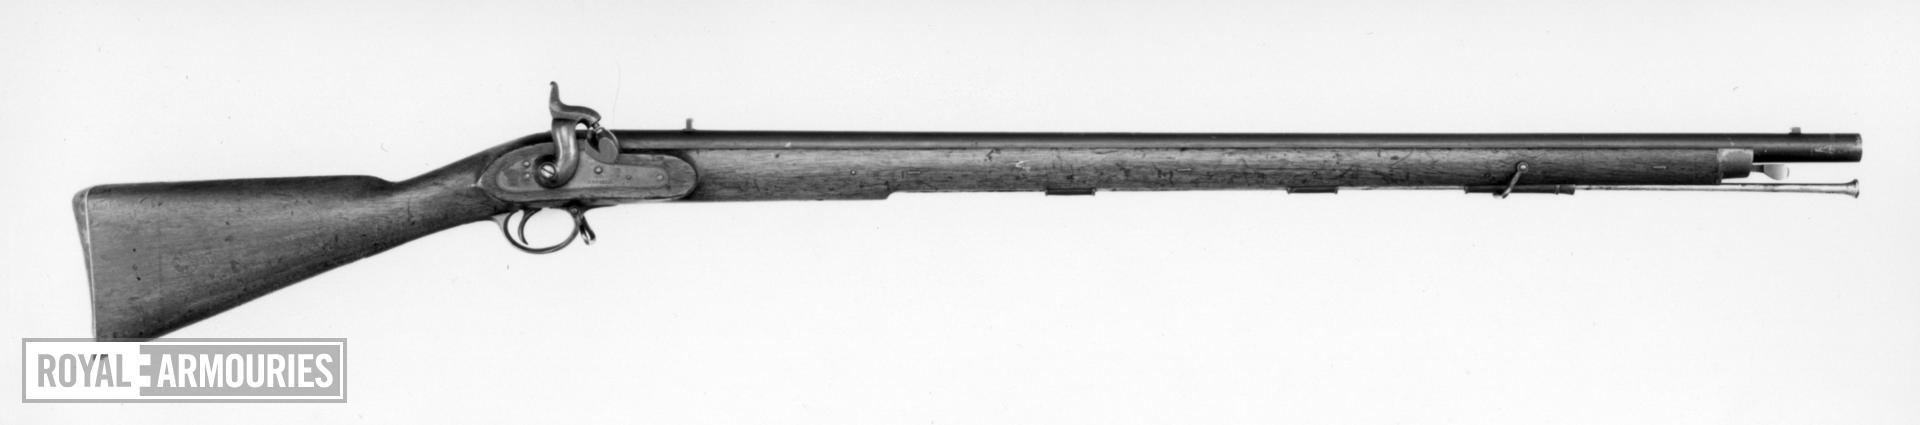 Percussion muzzle-loading military musket - Pattern 1842